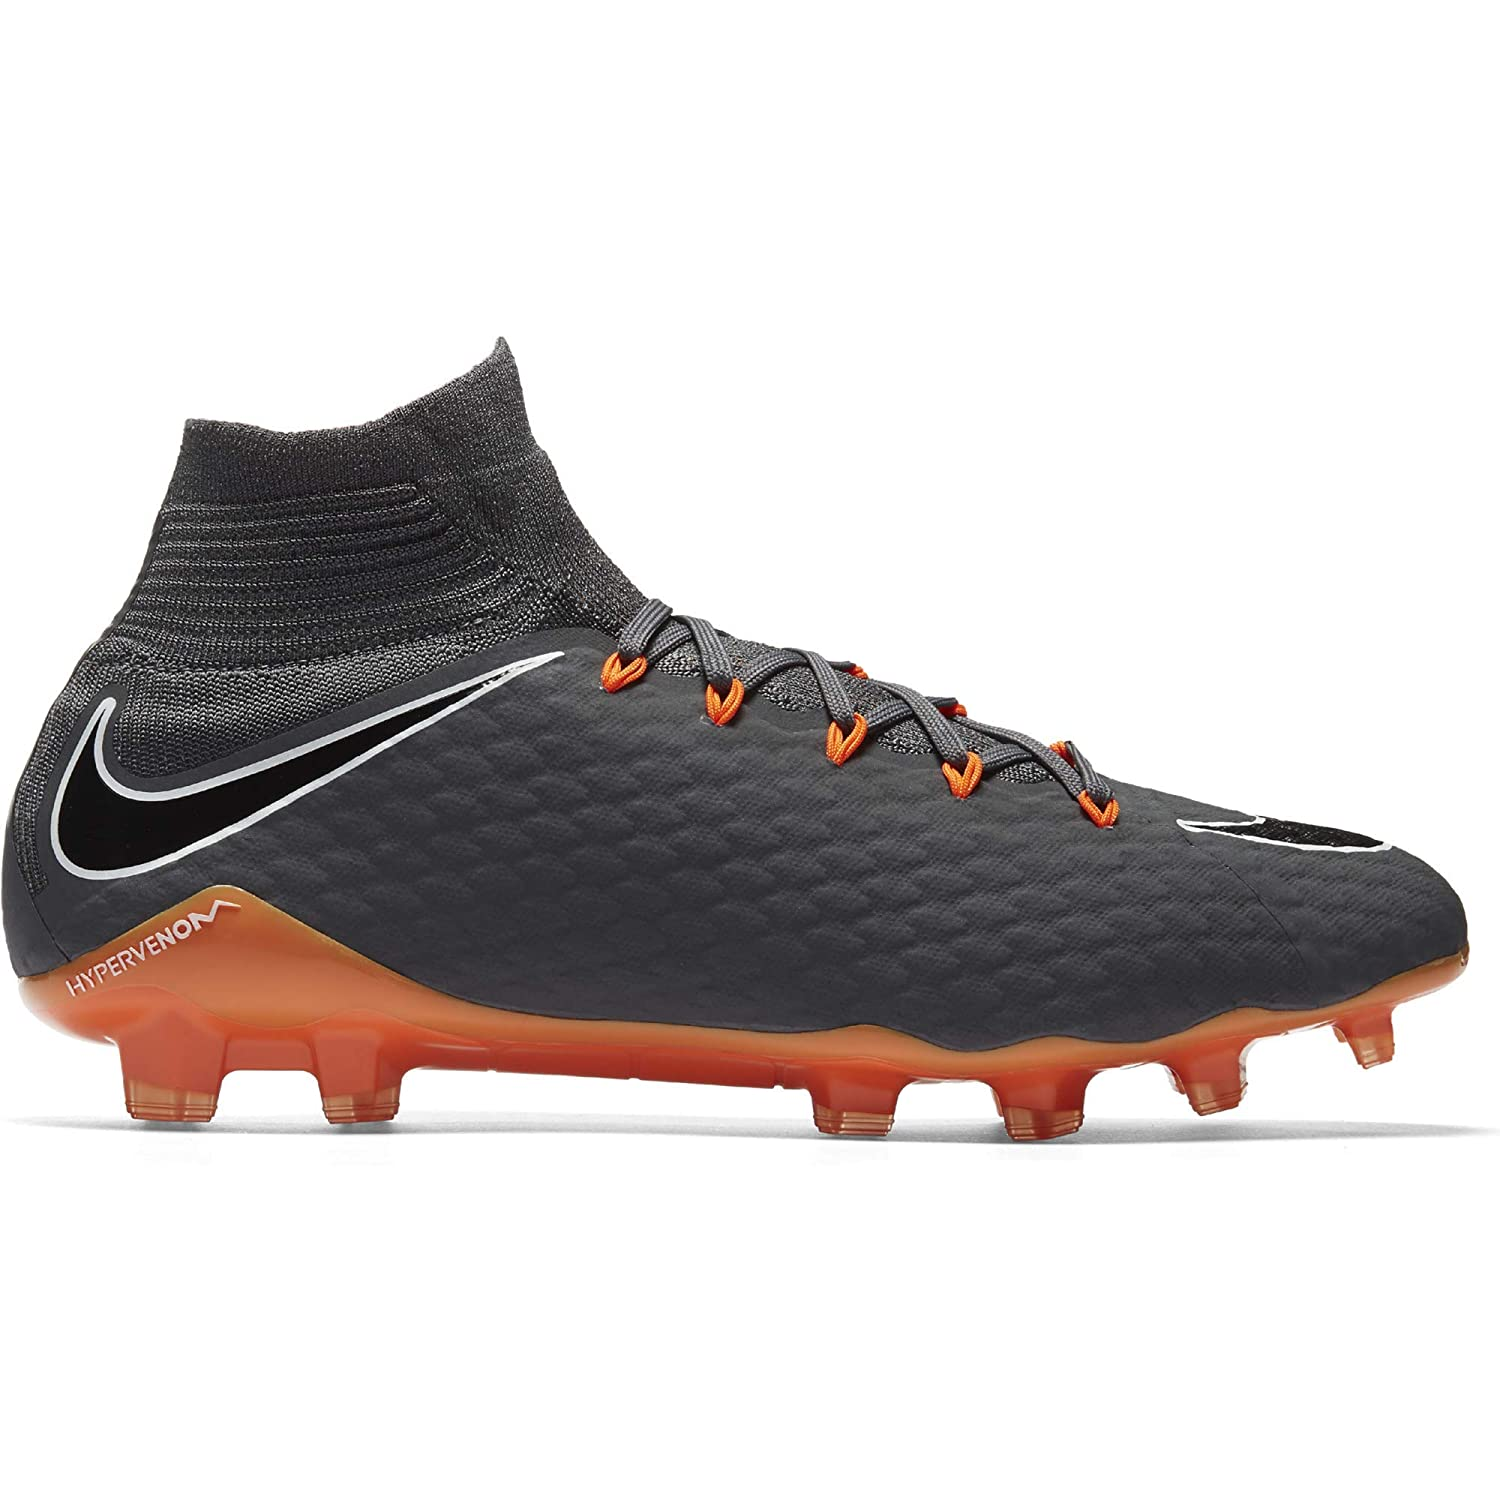 8265d42666f4 Amazon.com | Nike Hypervenom Phantom 3 Pro DF FG Cleats [Dark Grey] (10.5)  | Soccer